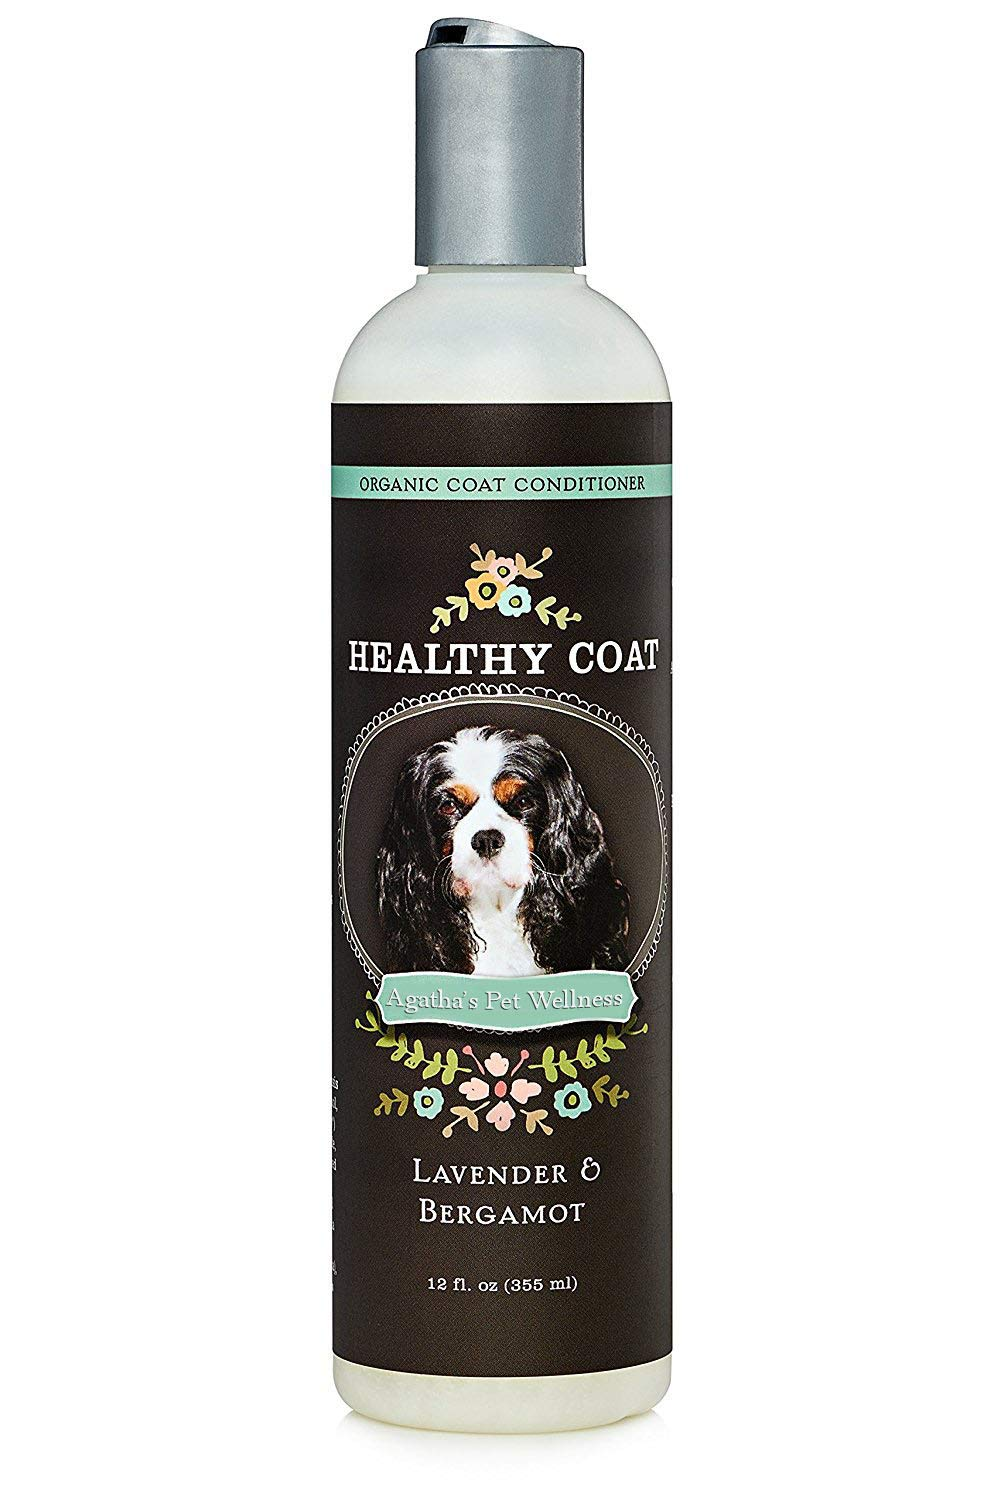 Agatha's Luxury Organic Lavender & Bergamot Dog Conditioner & Detangler - Nourishing & Soothing, for Healthy & Easy to Brush Coats ● Hypoallergenic, Sulphate Free ● 12oz